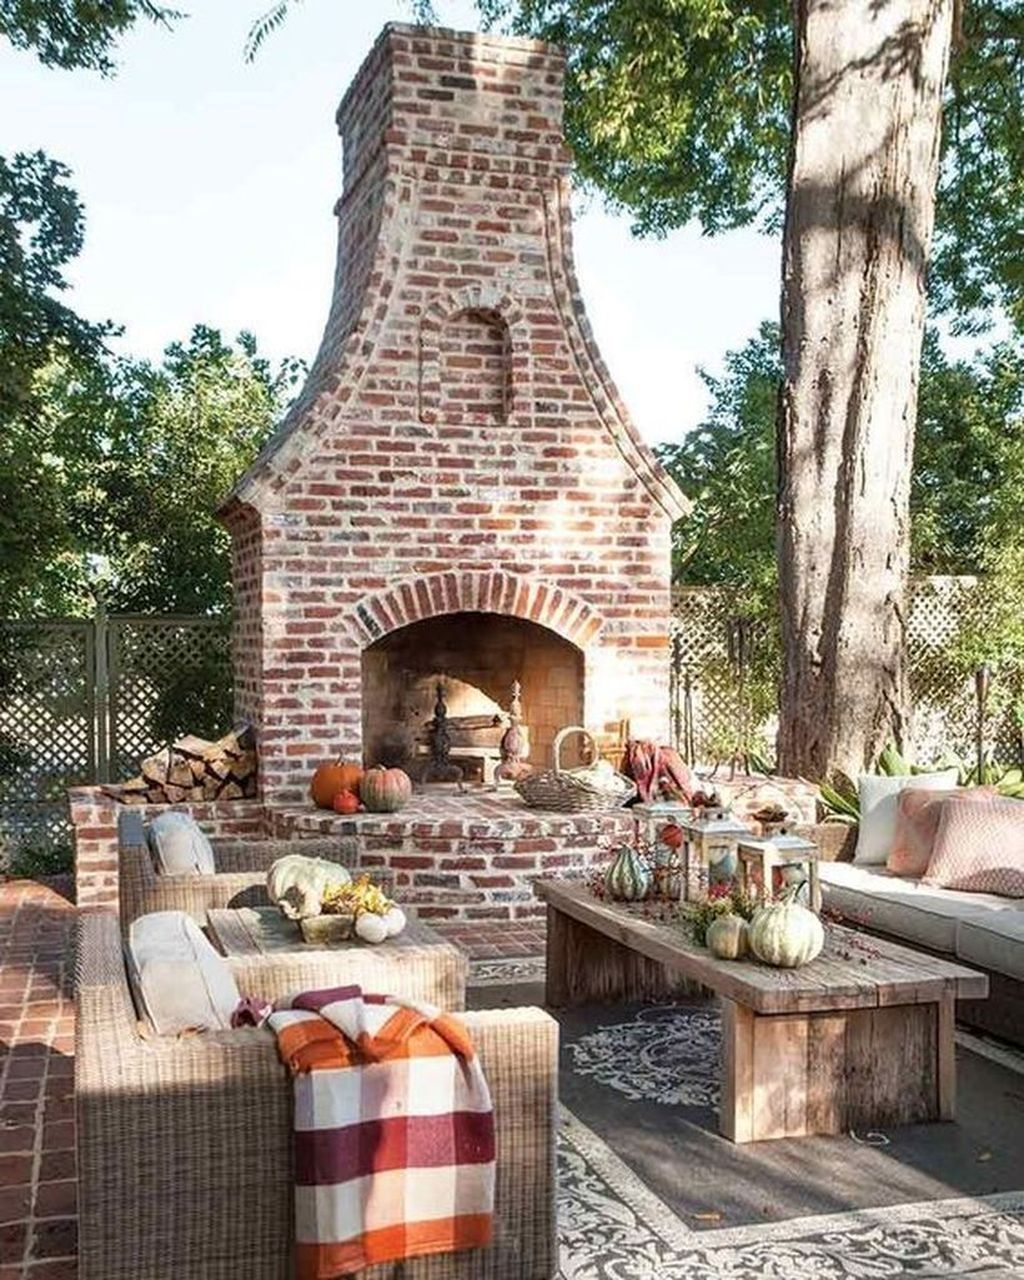 30+ Favorite Outdoor Rooms Ideas to Upgrade Your Outdoor Space